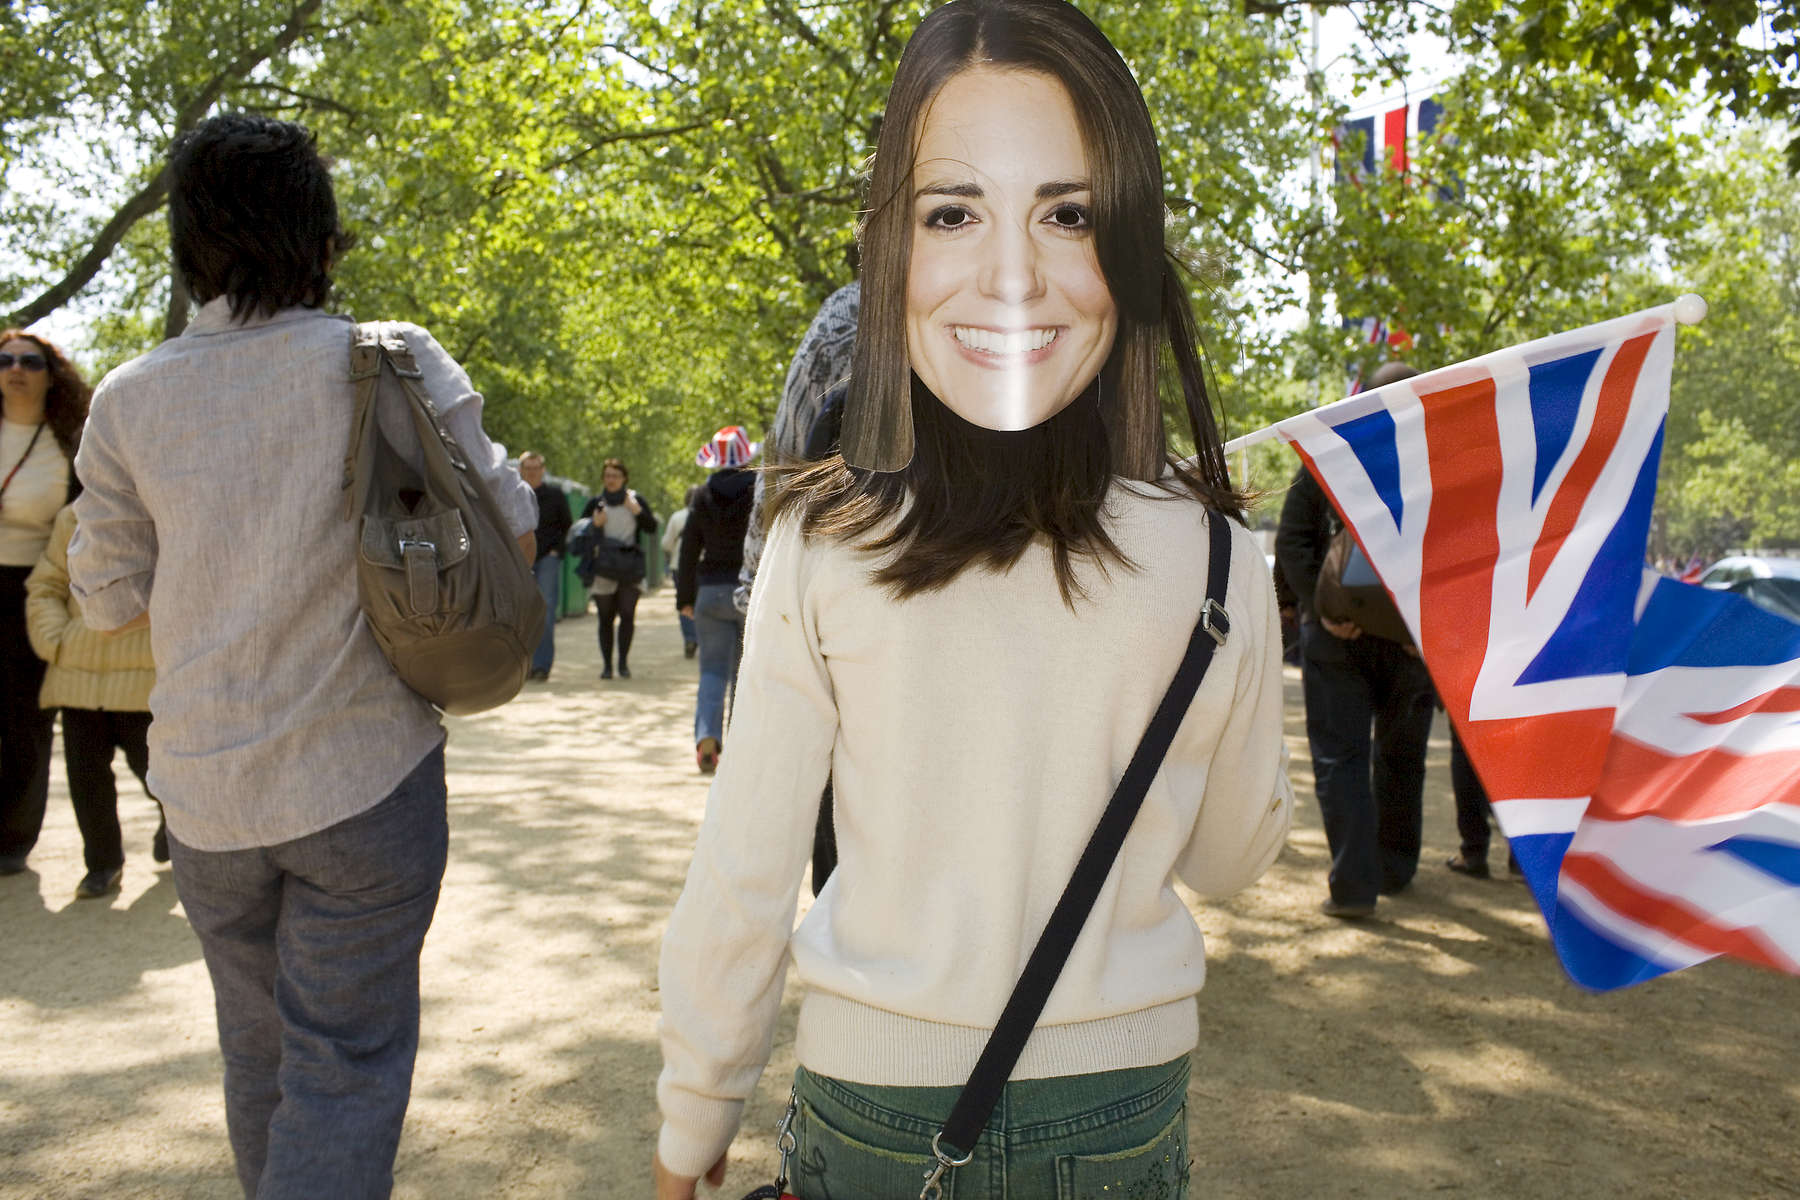 A young girl with a Kate Middletom mask on the back of her head waves a union flag as she walks along the Mall towards Buckingham Palace.